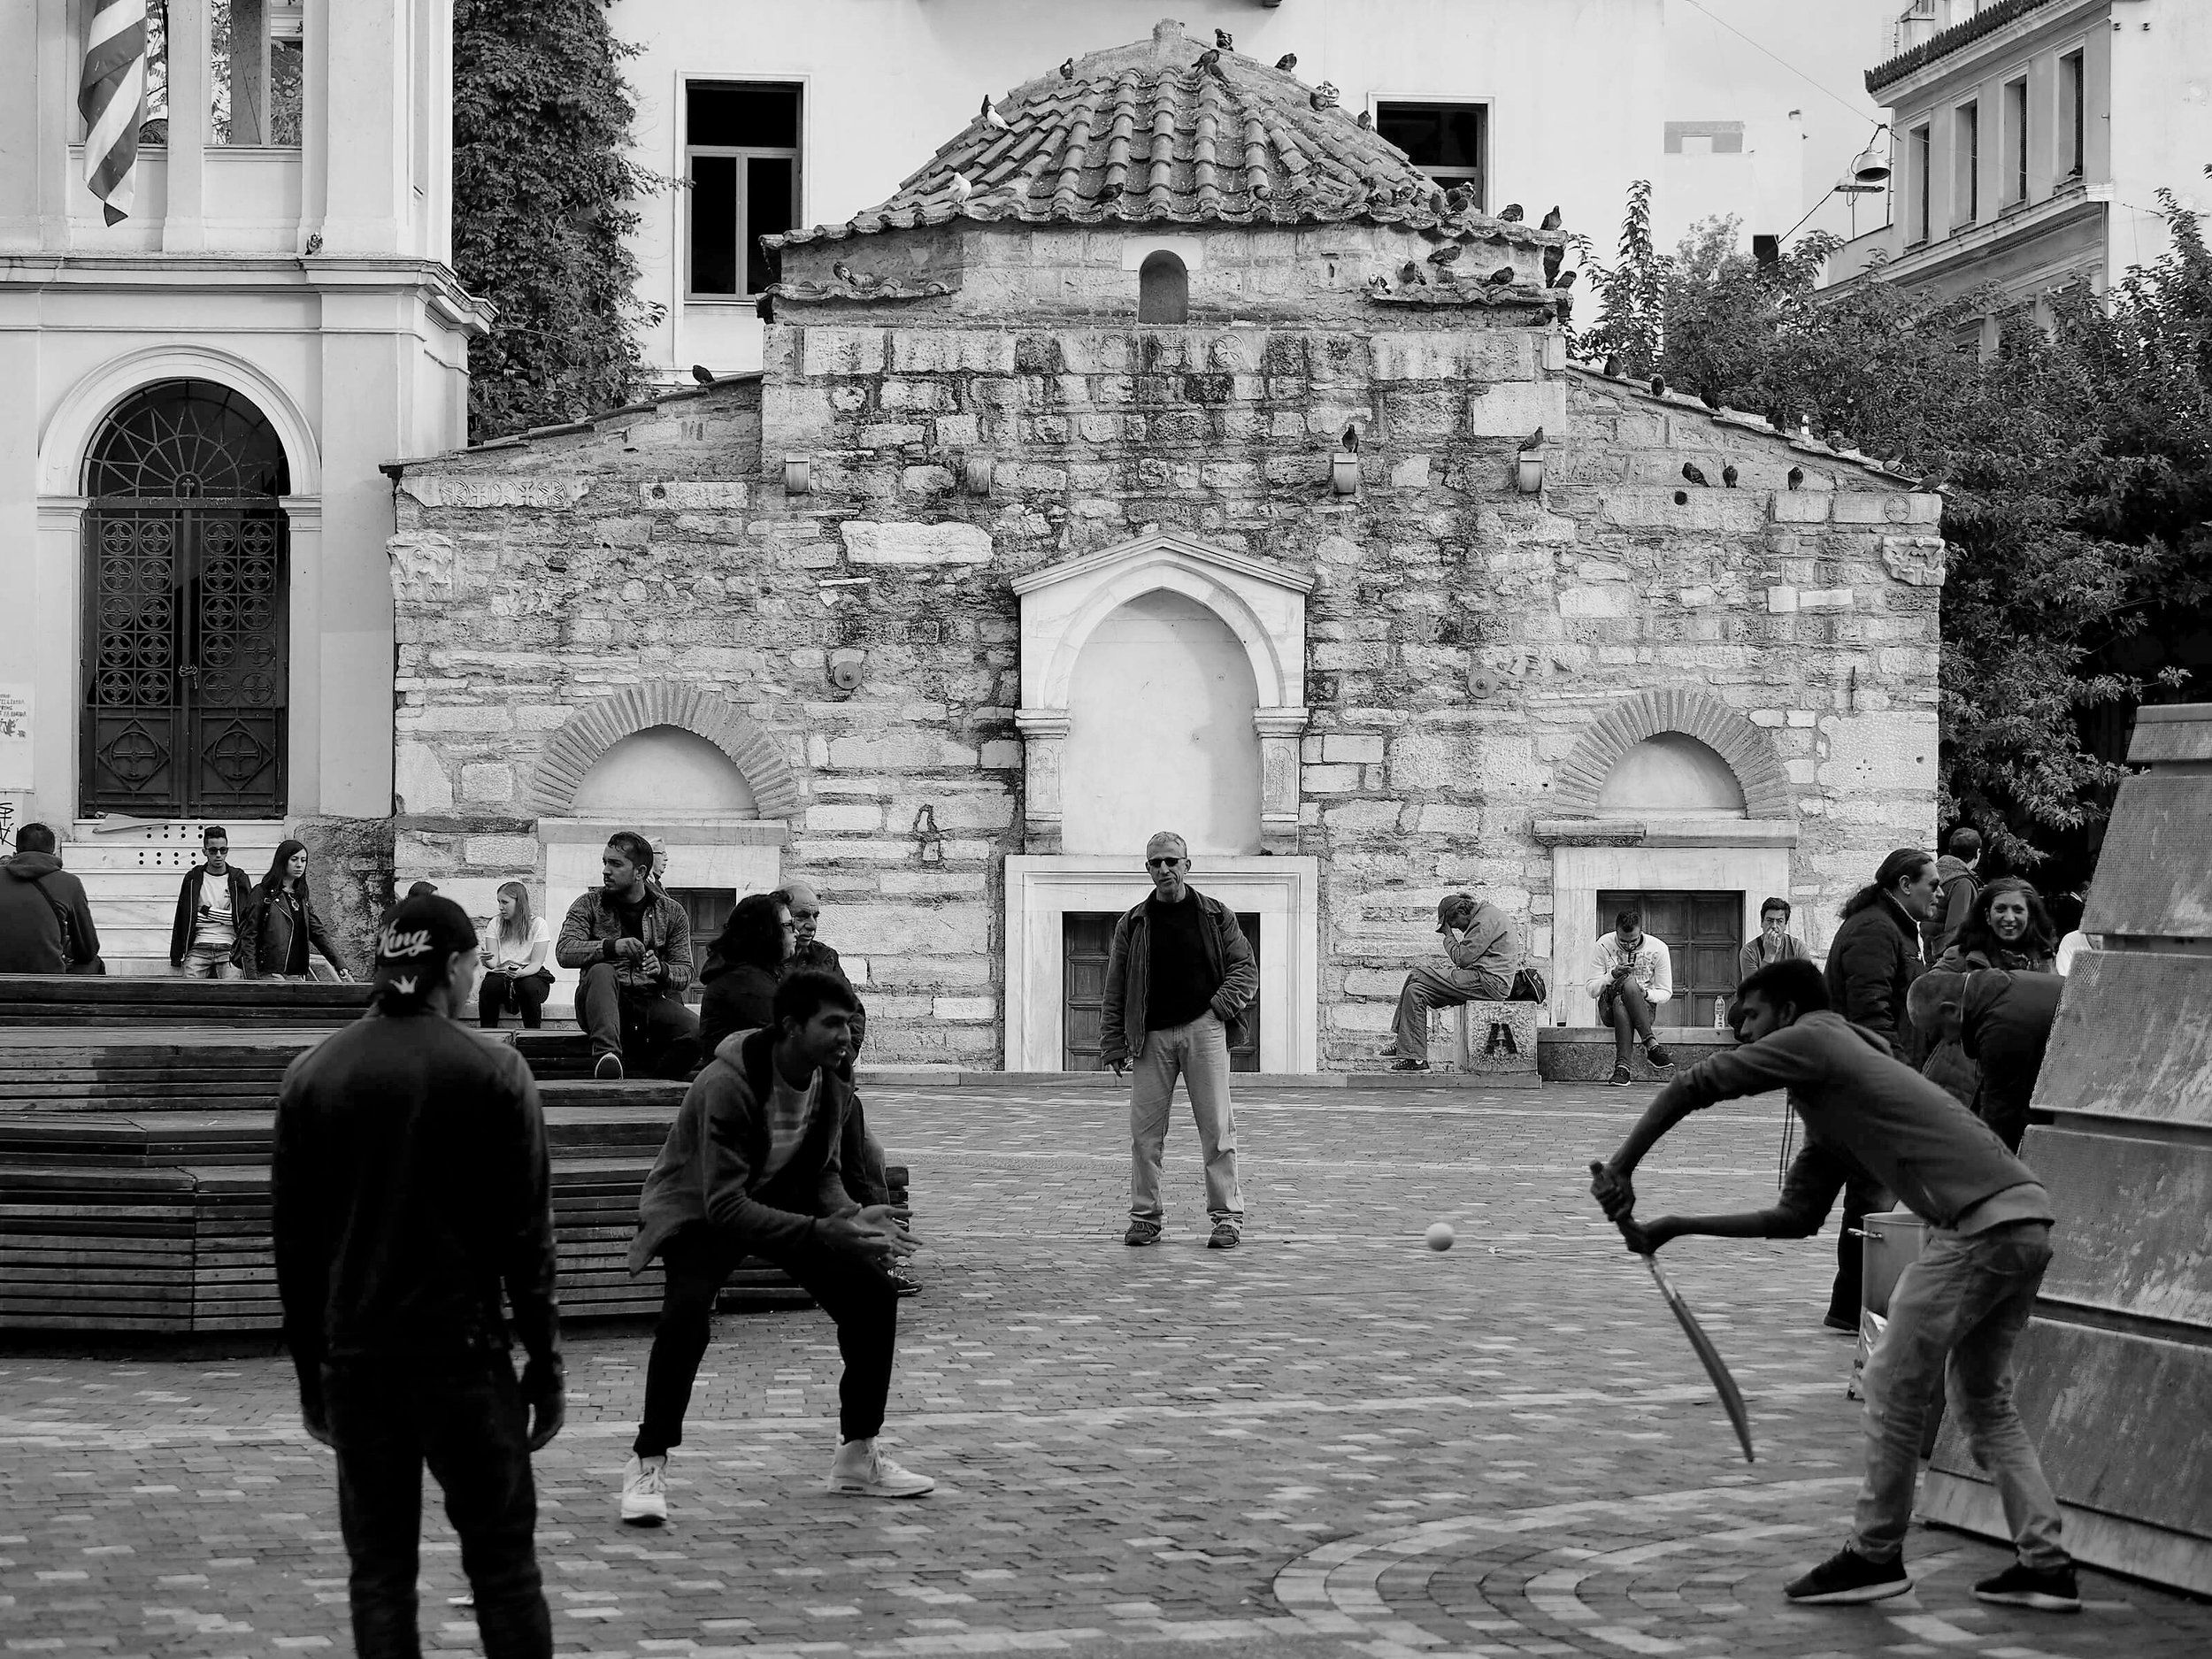 Street cricket, Monastiraki Square, Athens, November 2017.